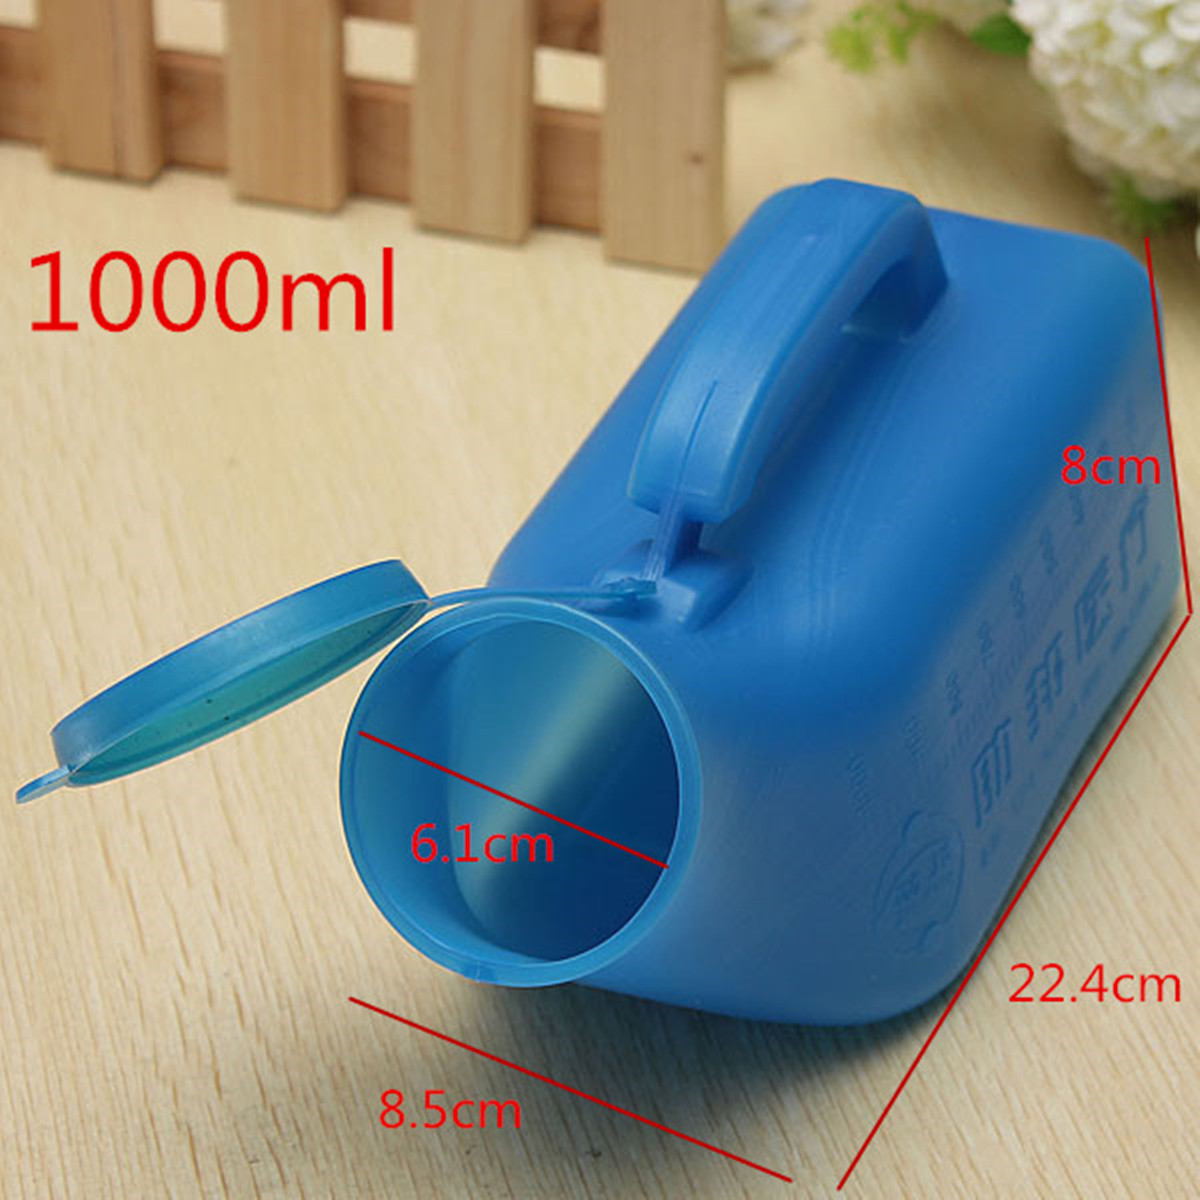 1000ml Men Male Urinal Pee Bottle Portable Toilet Camping Travel Tent Convenience